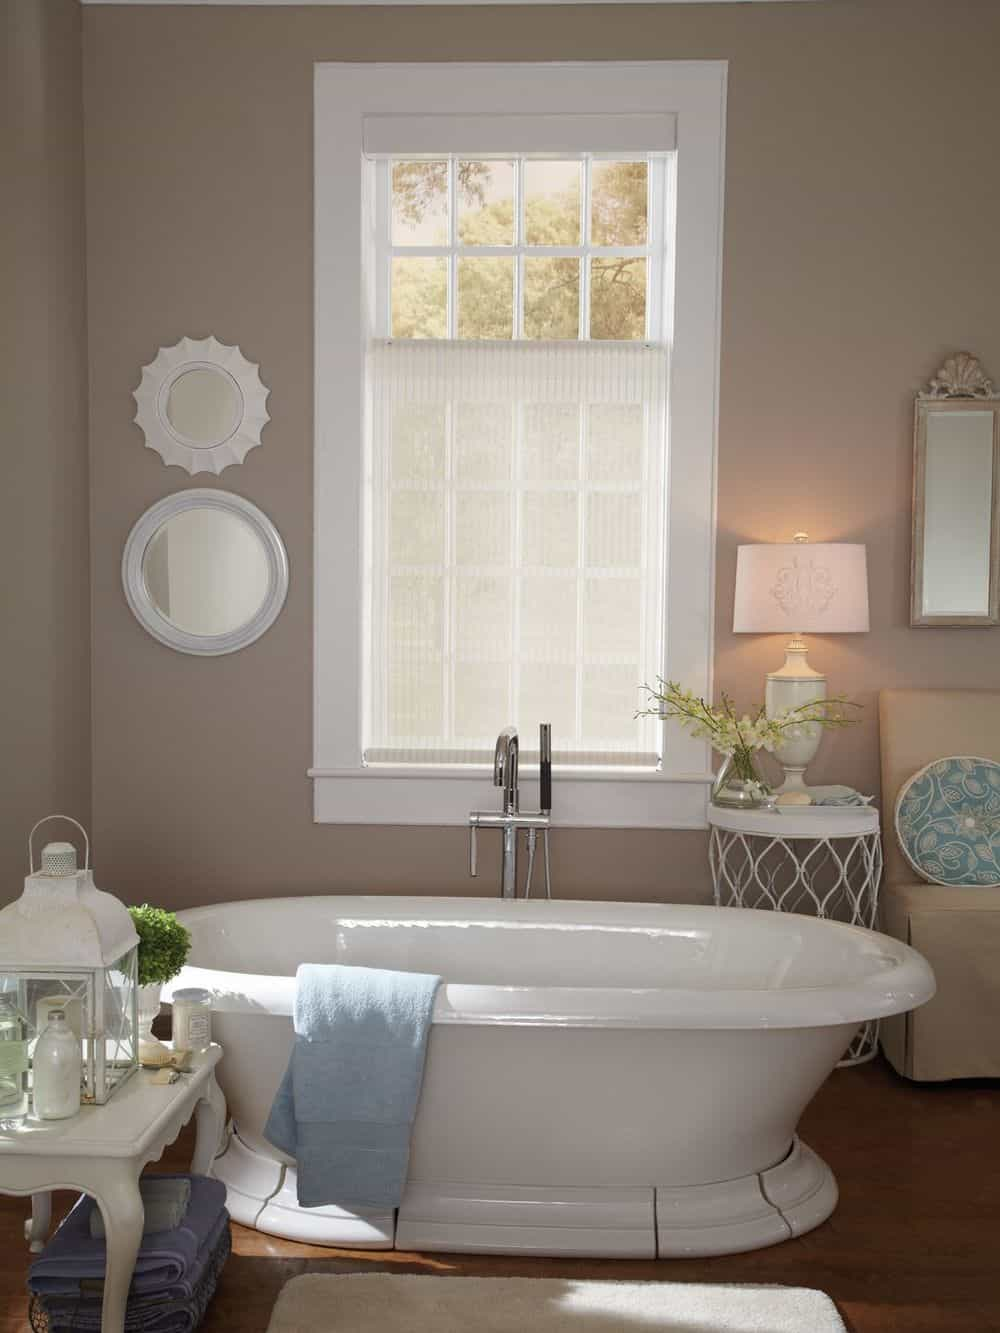 A master bathroom featuring a freestanding tub and a side table with a charming table lamp, along with a window with a lovely window shade.